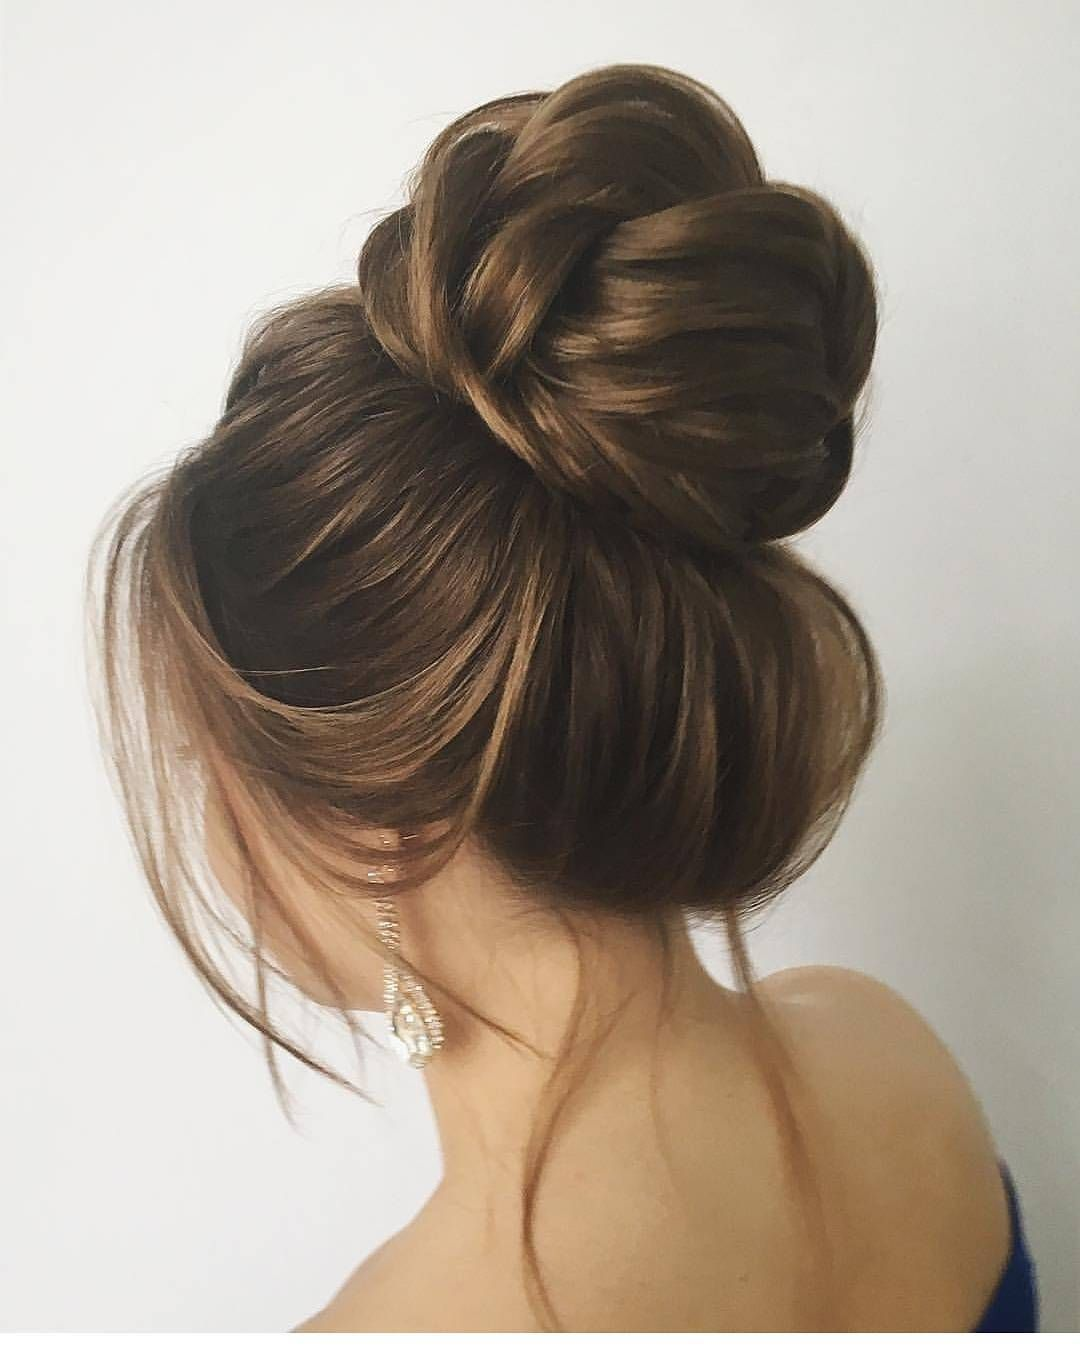 Hair buns have been a very popular hairstyle since ages hair buns